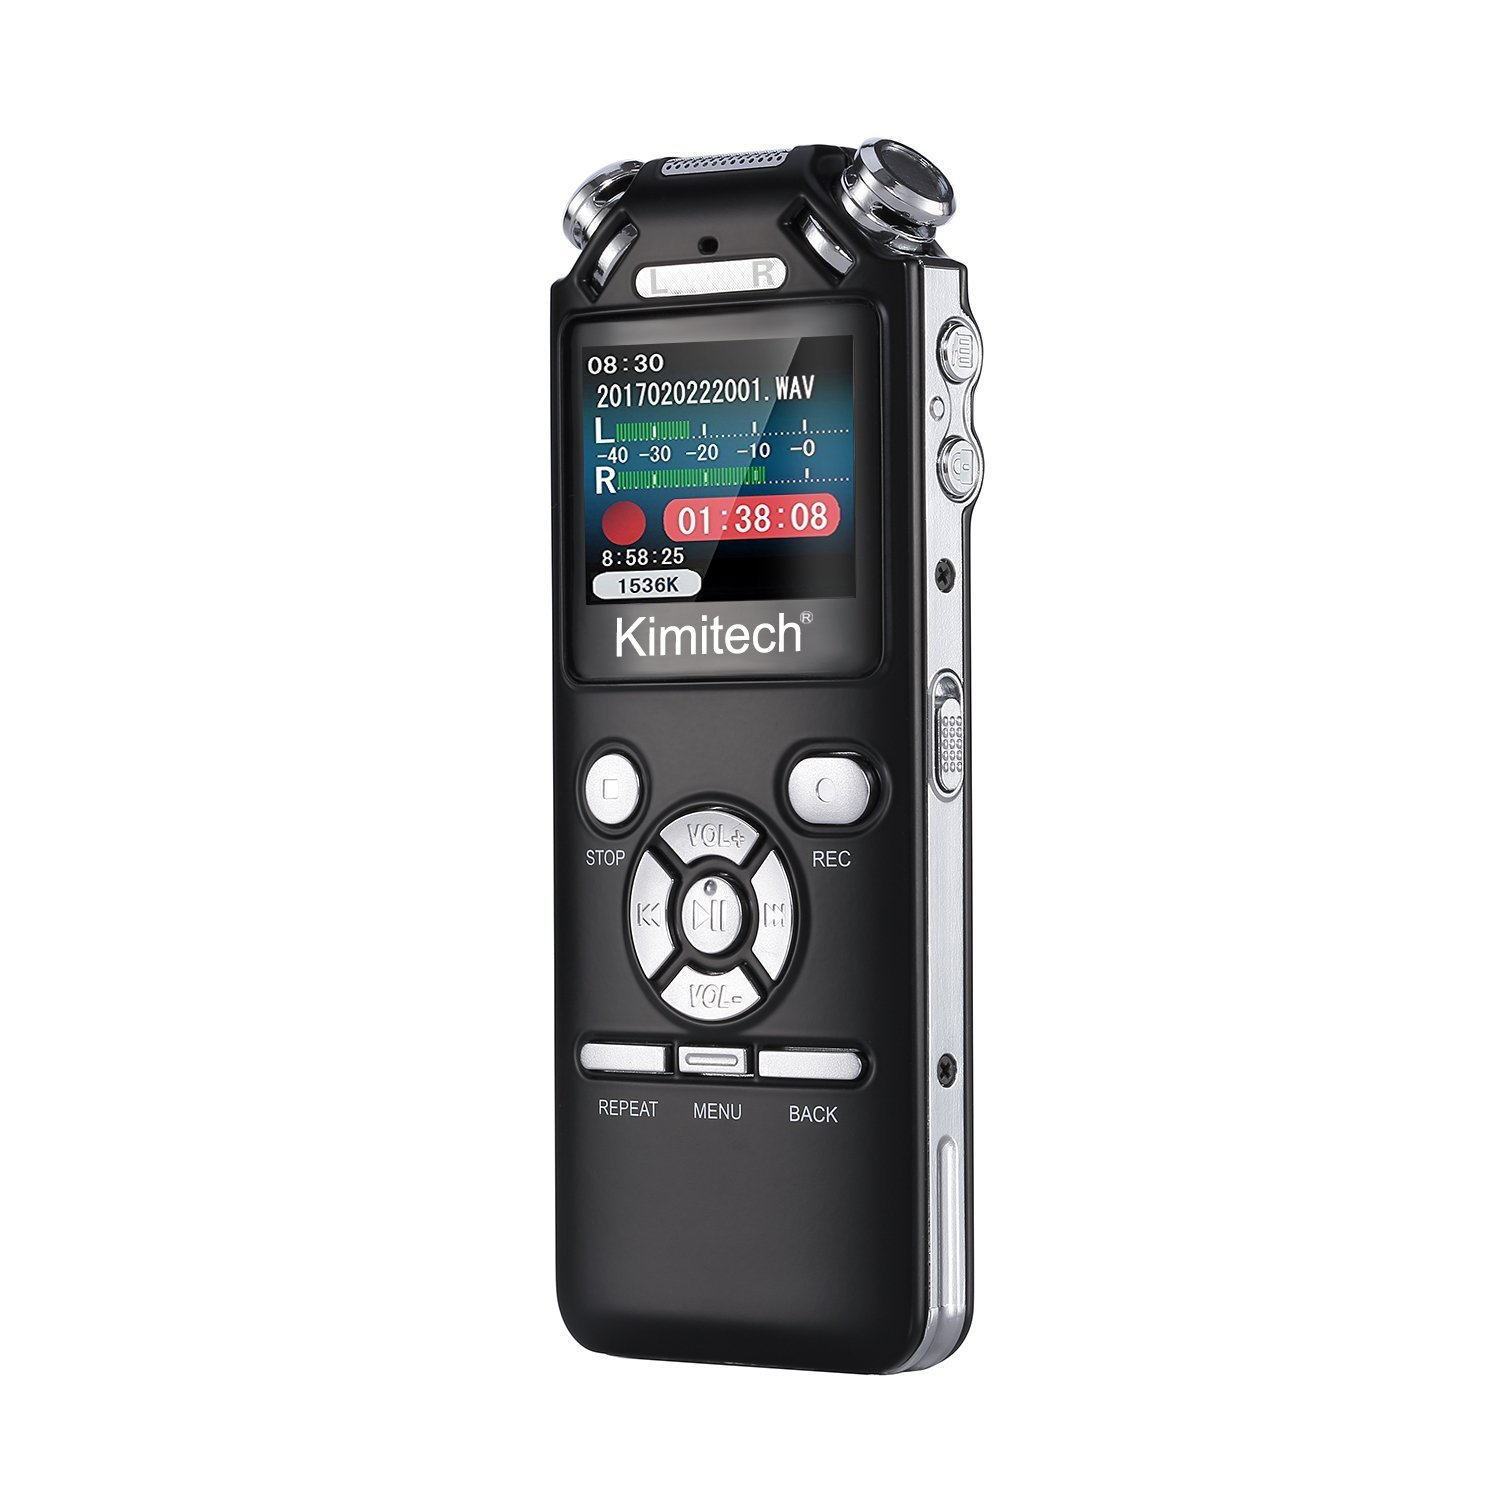 Digital Voice Recorder, Kimitech 8GB Dictaphone-Sound Recorder with USB and OLED Bright Display, MP3 Player, Voice-Activated/Stereo One Touch Recording/A-B Repeat/PC compatible/Noise Cancelling